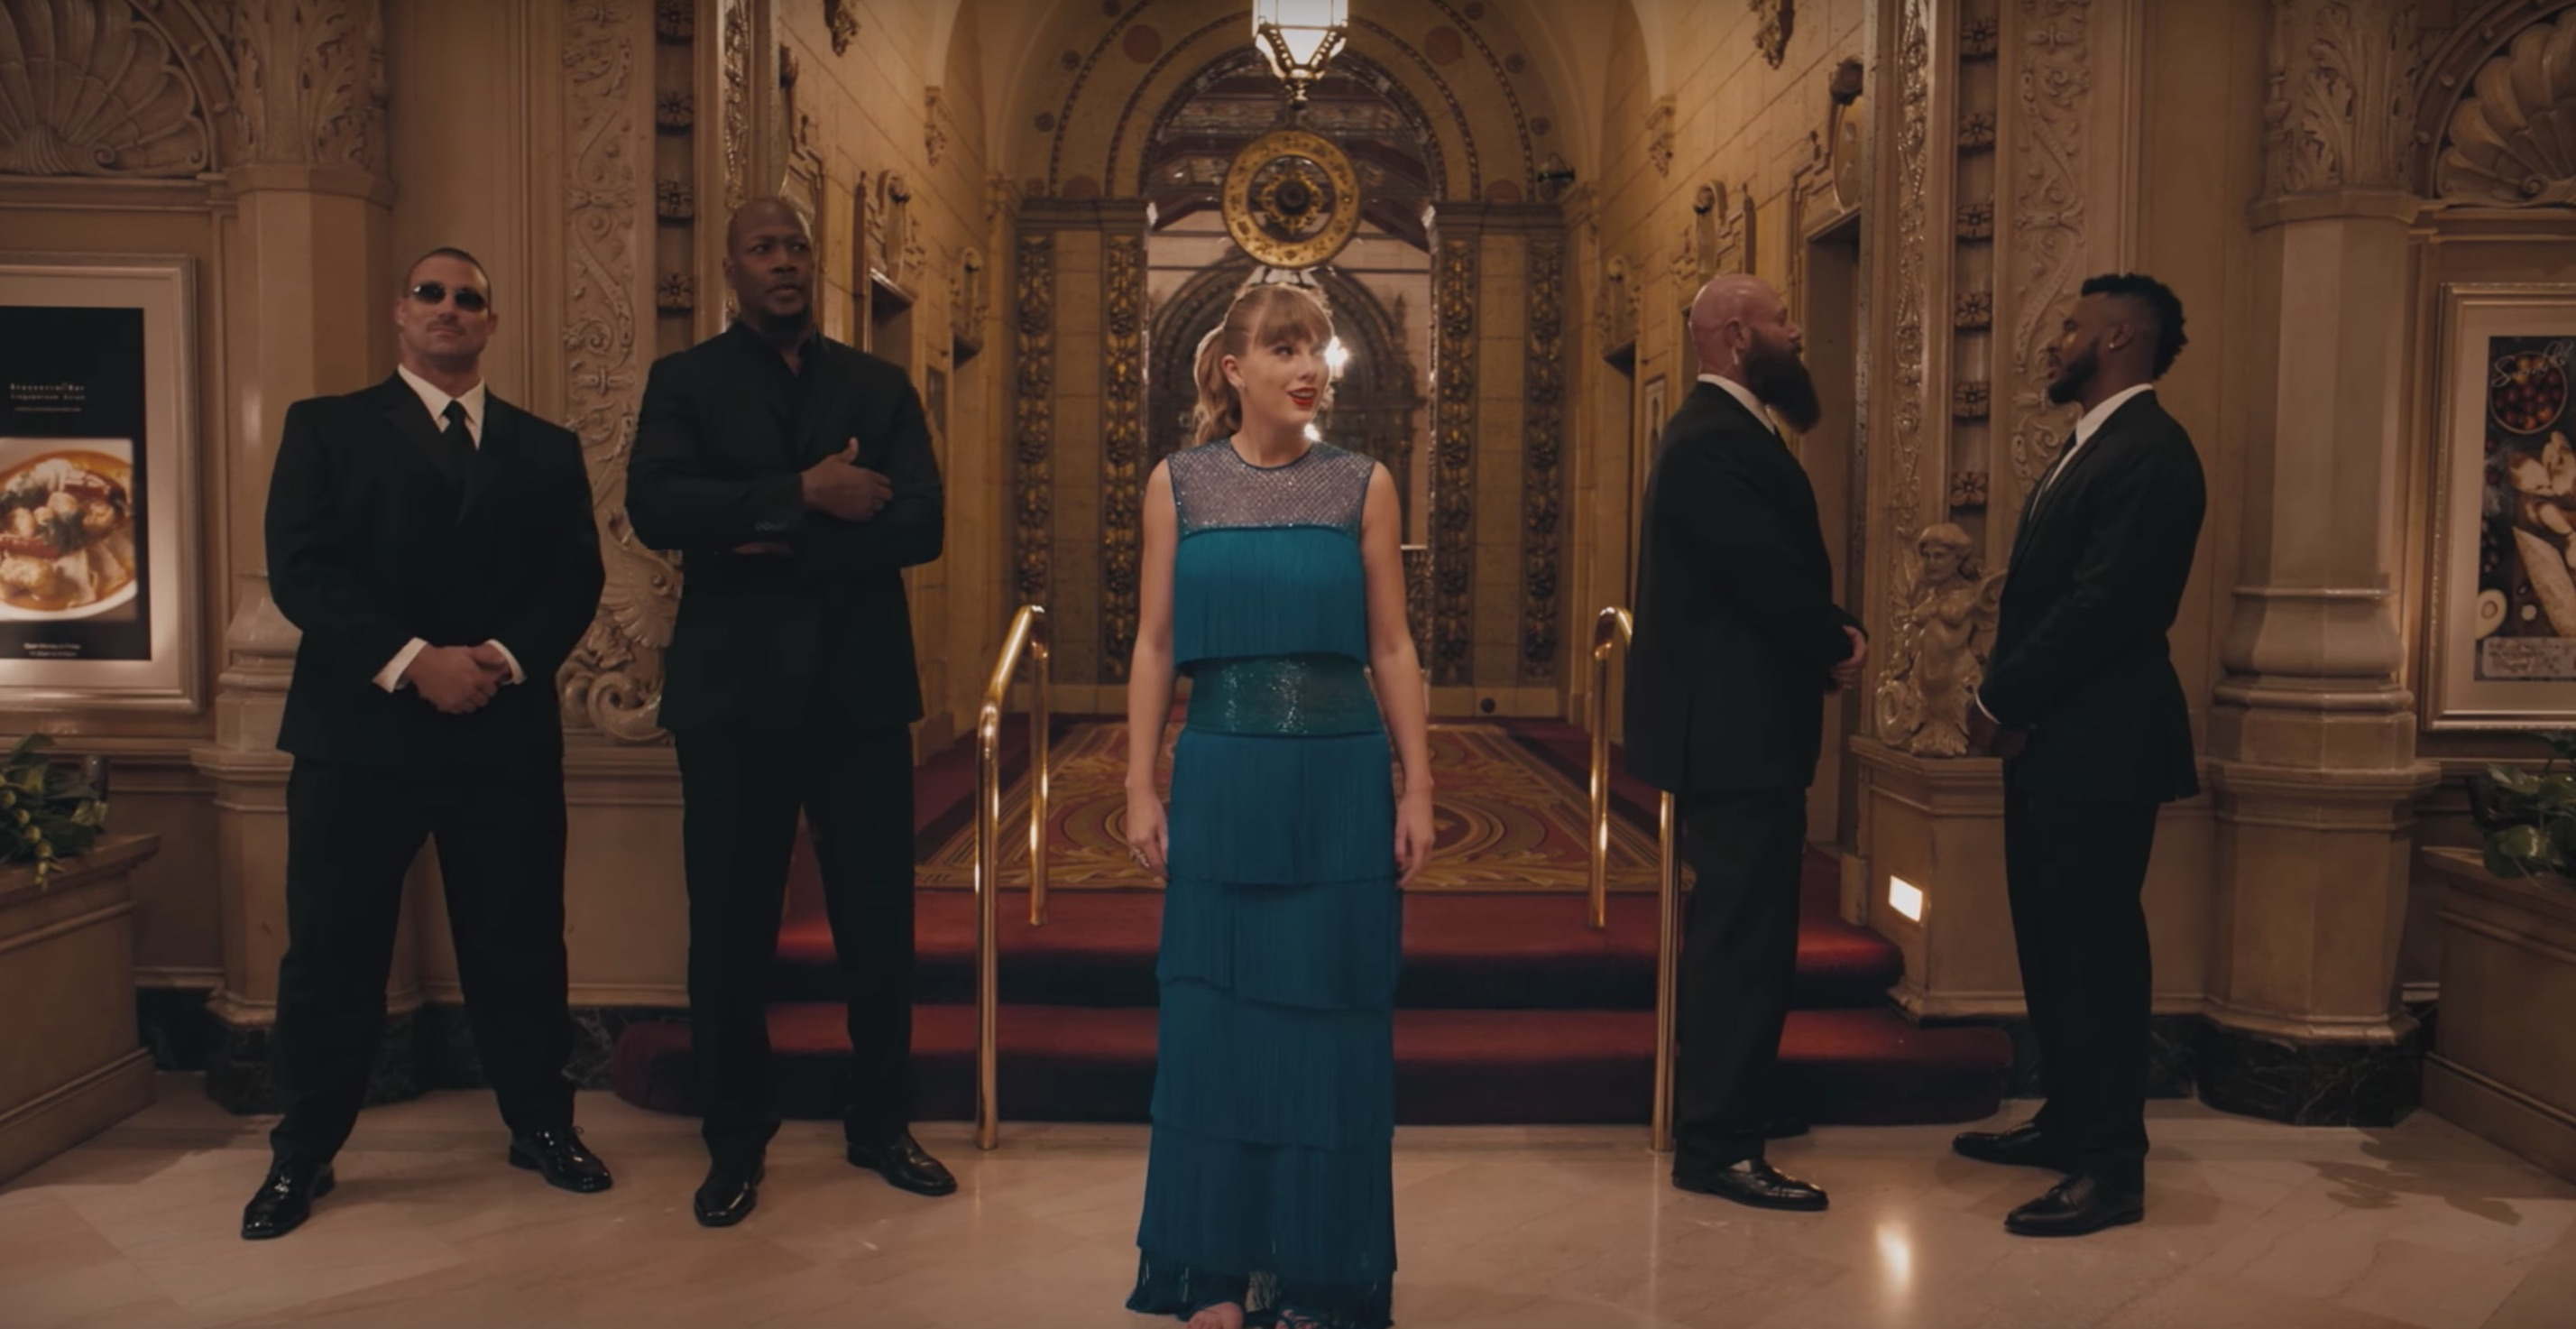 The Best Fan Reactions to Taylor Swift's 'Delicate' Video